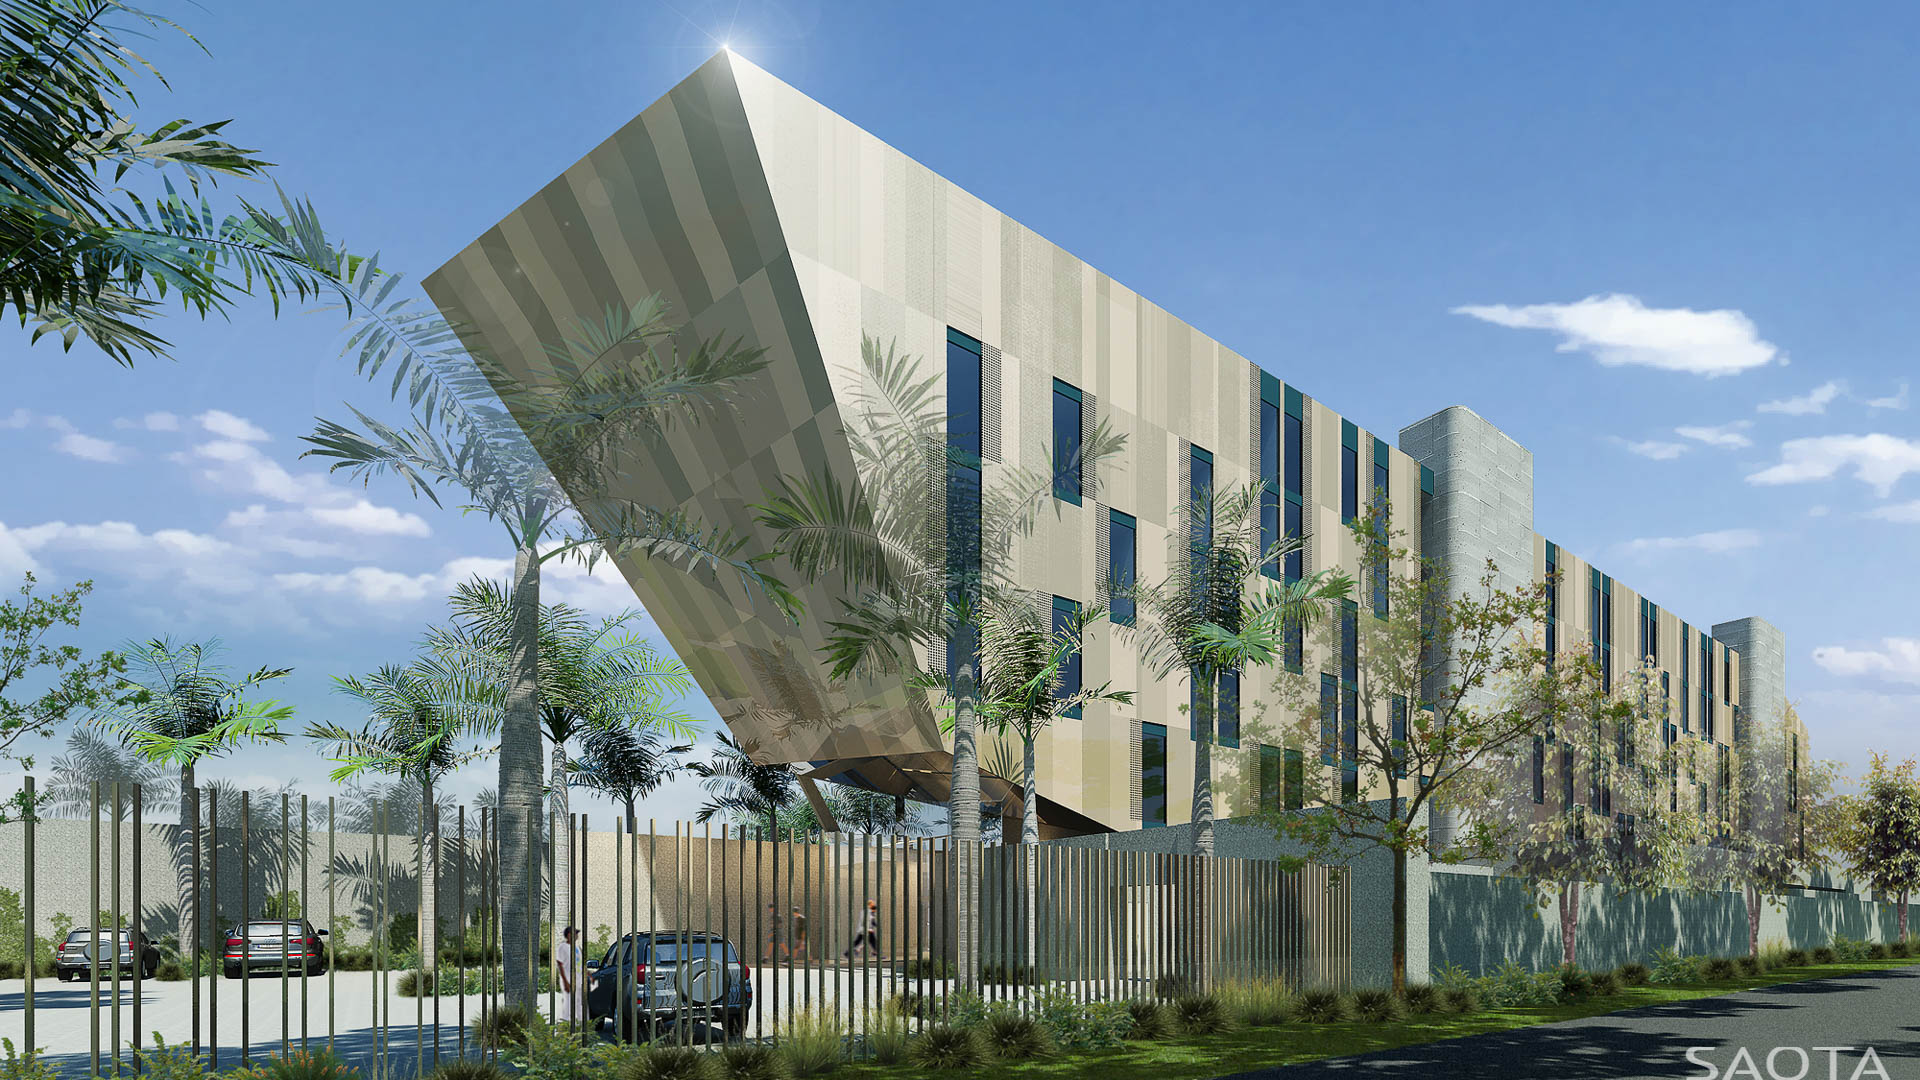 Noom hotel conakry in guinea by saota livin spaces for La architecte